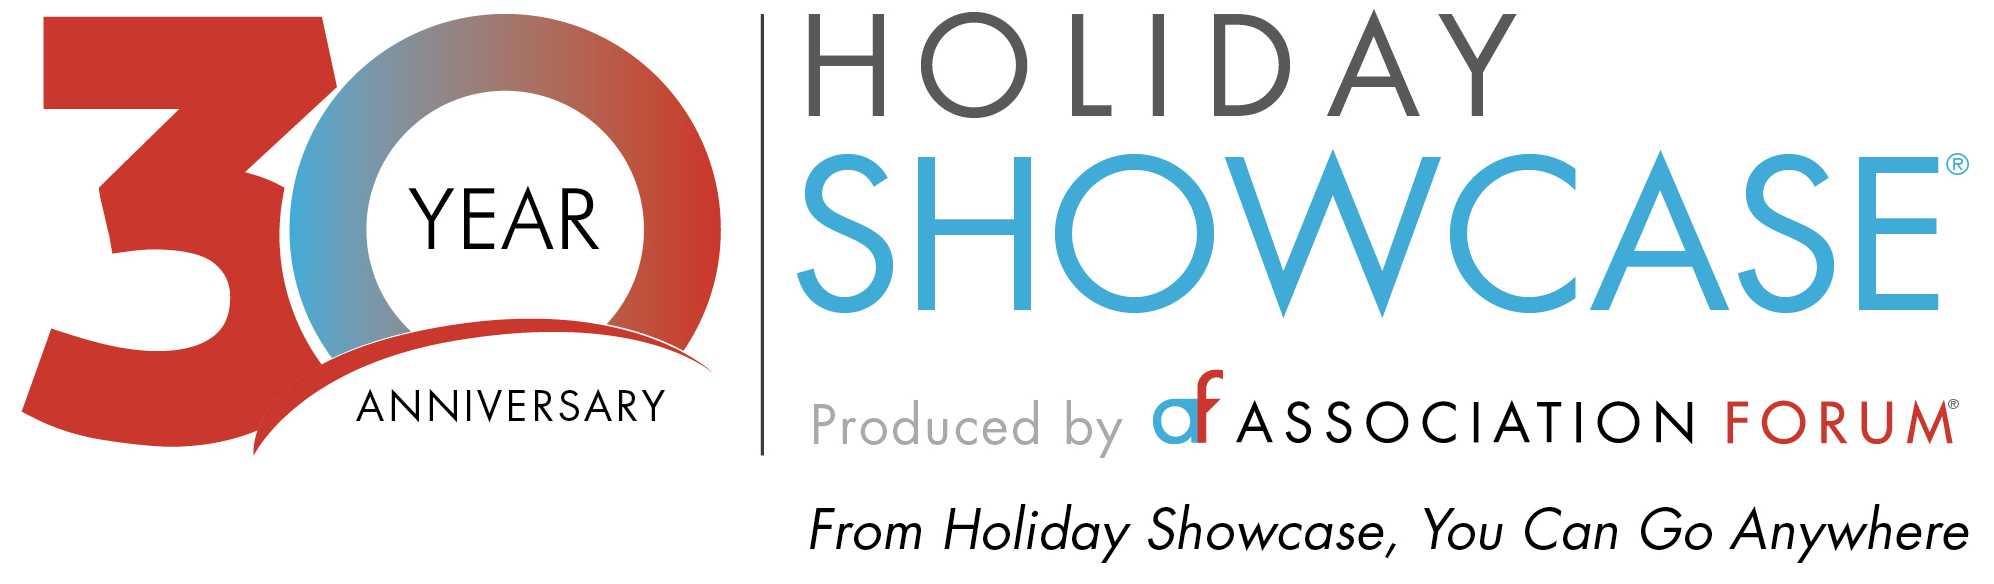 Holiday Showcase 2018